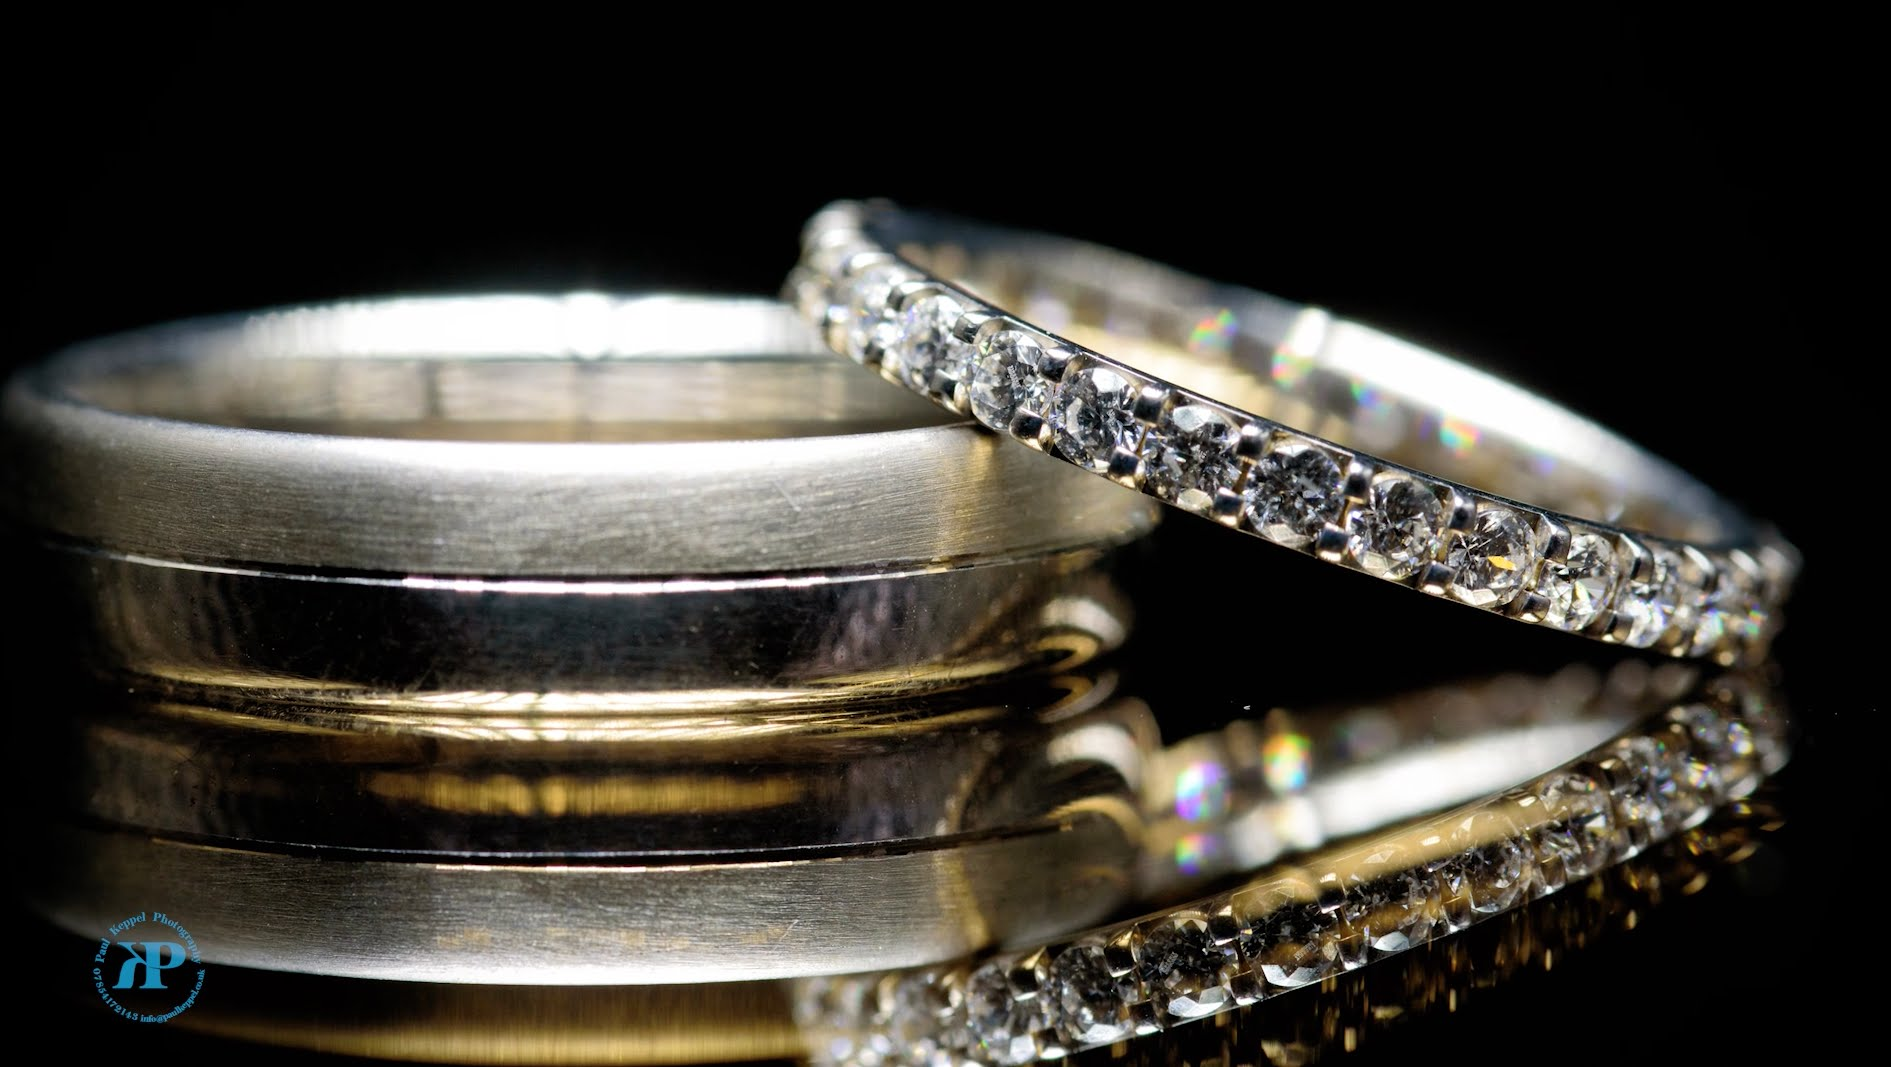 Cheap Lights for Creating Amazing Wedding Ring Shots LensVid